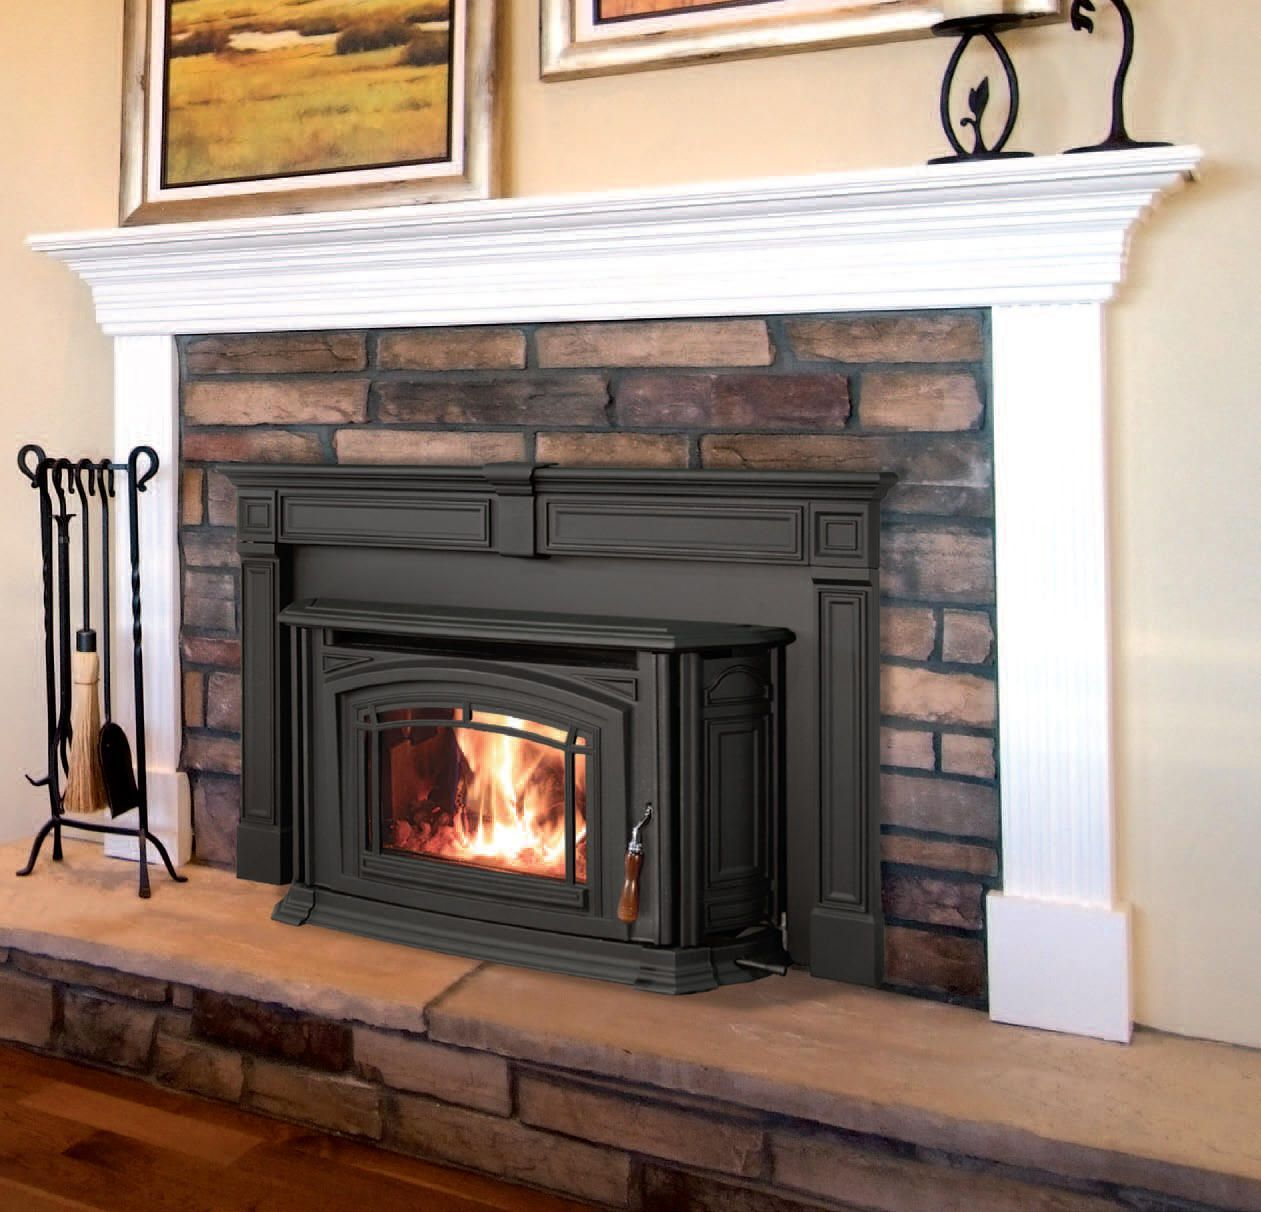 Harman Fireplace Insert Elegant I Like This Pellet Stove with A Mantel